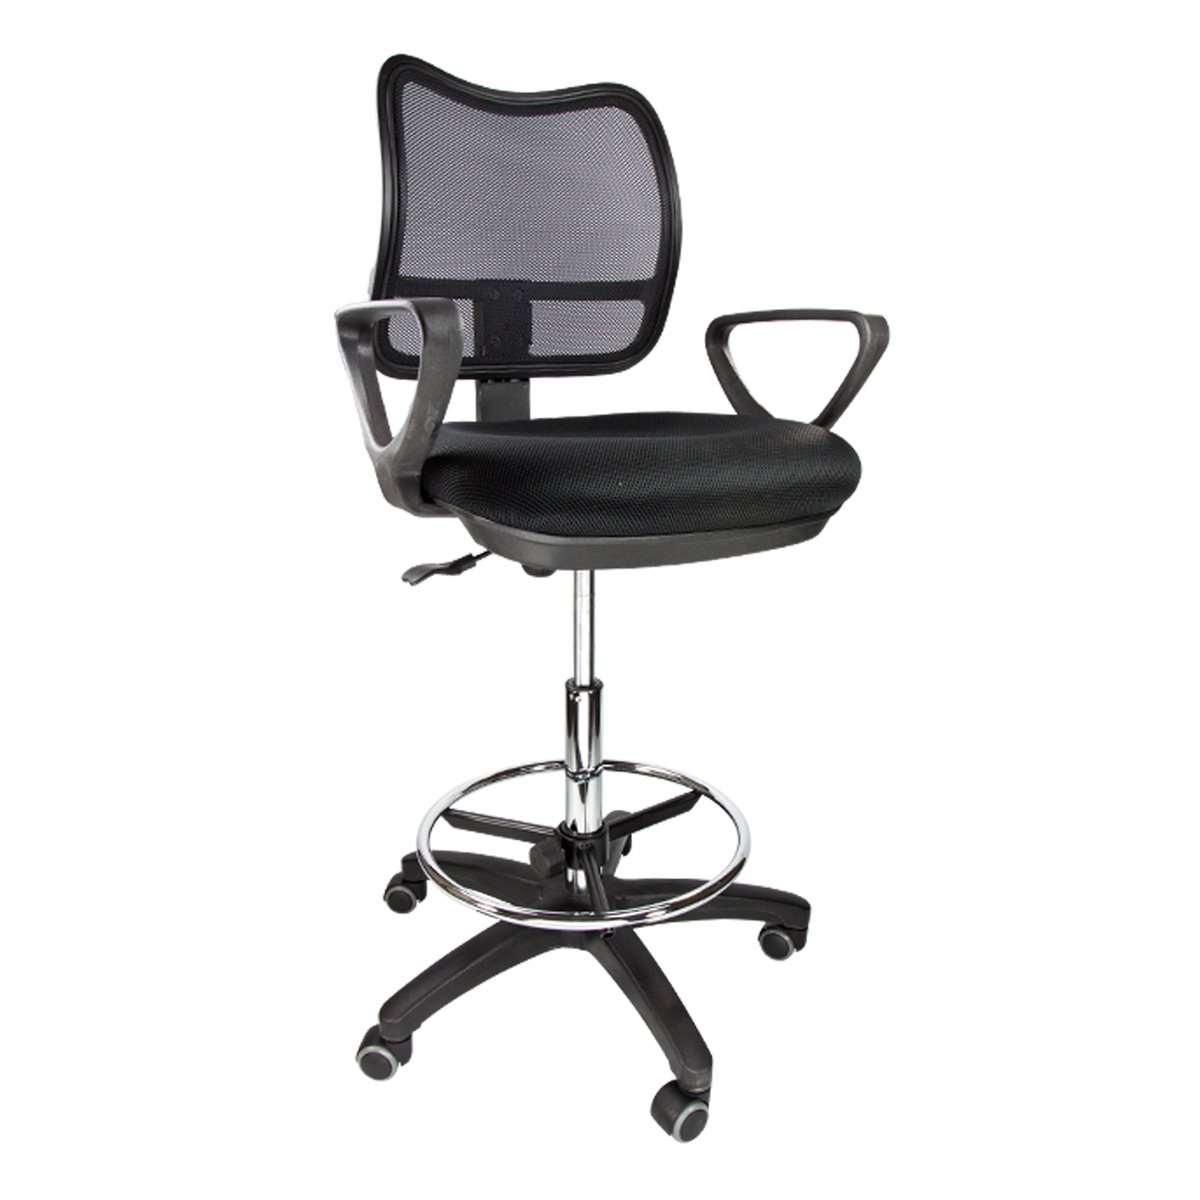 Adjustable Drafting Chair 2 Drafting Chair Stool Armrest Ergonomic Mesh Adjustable